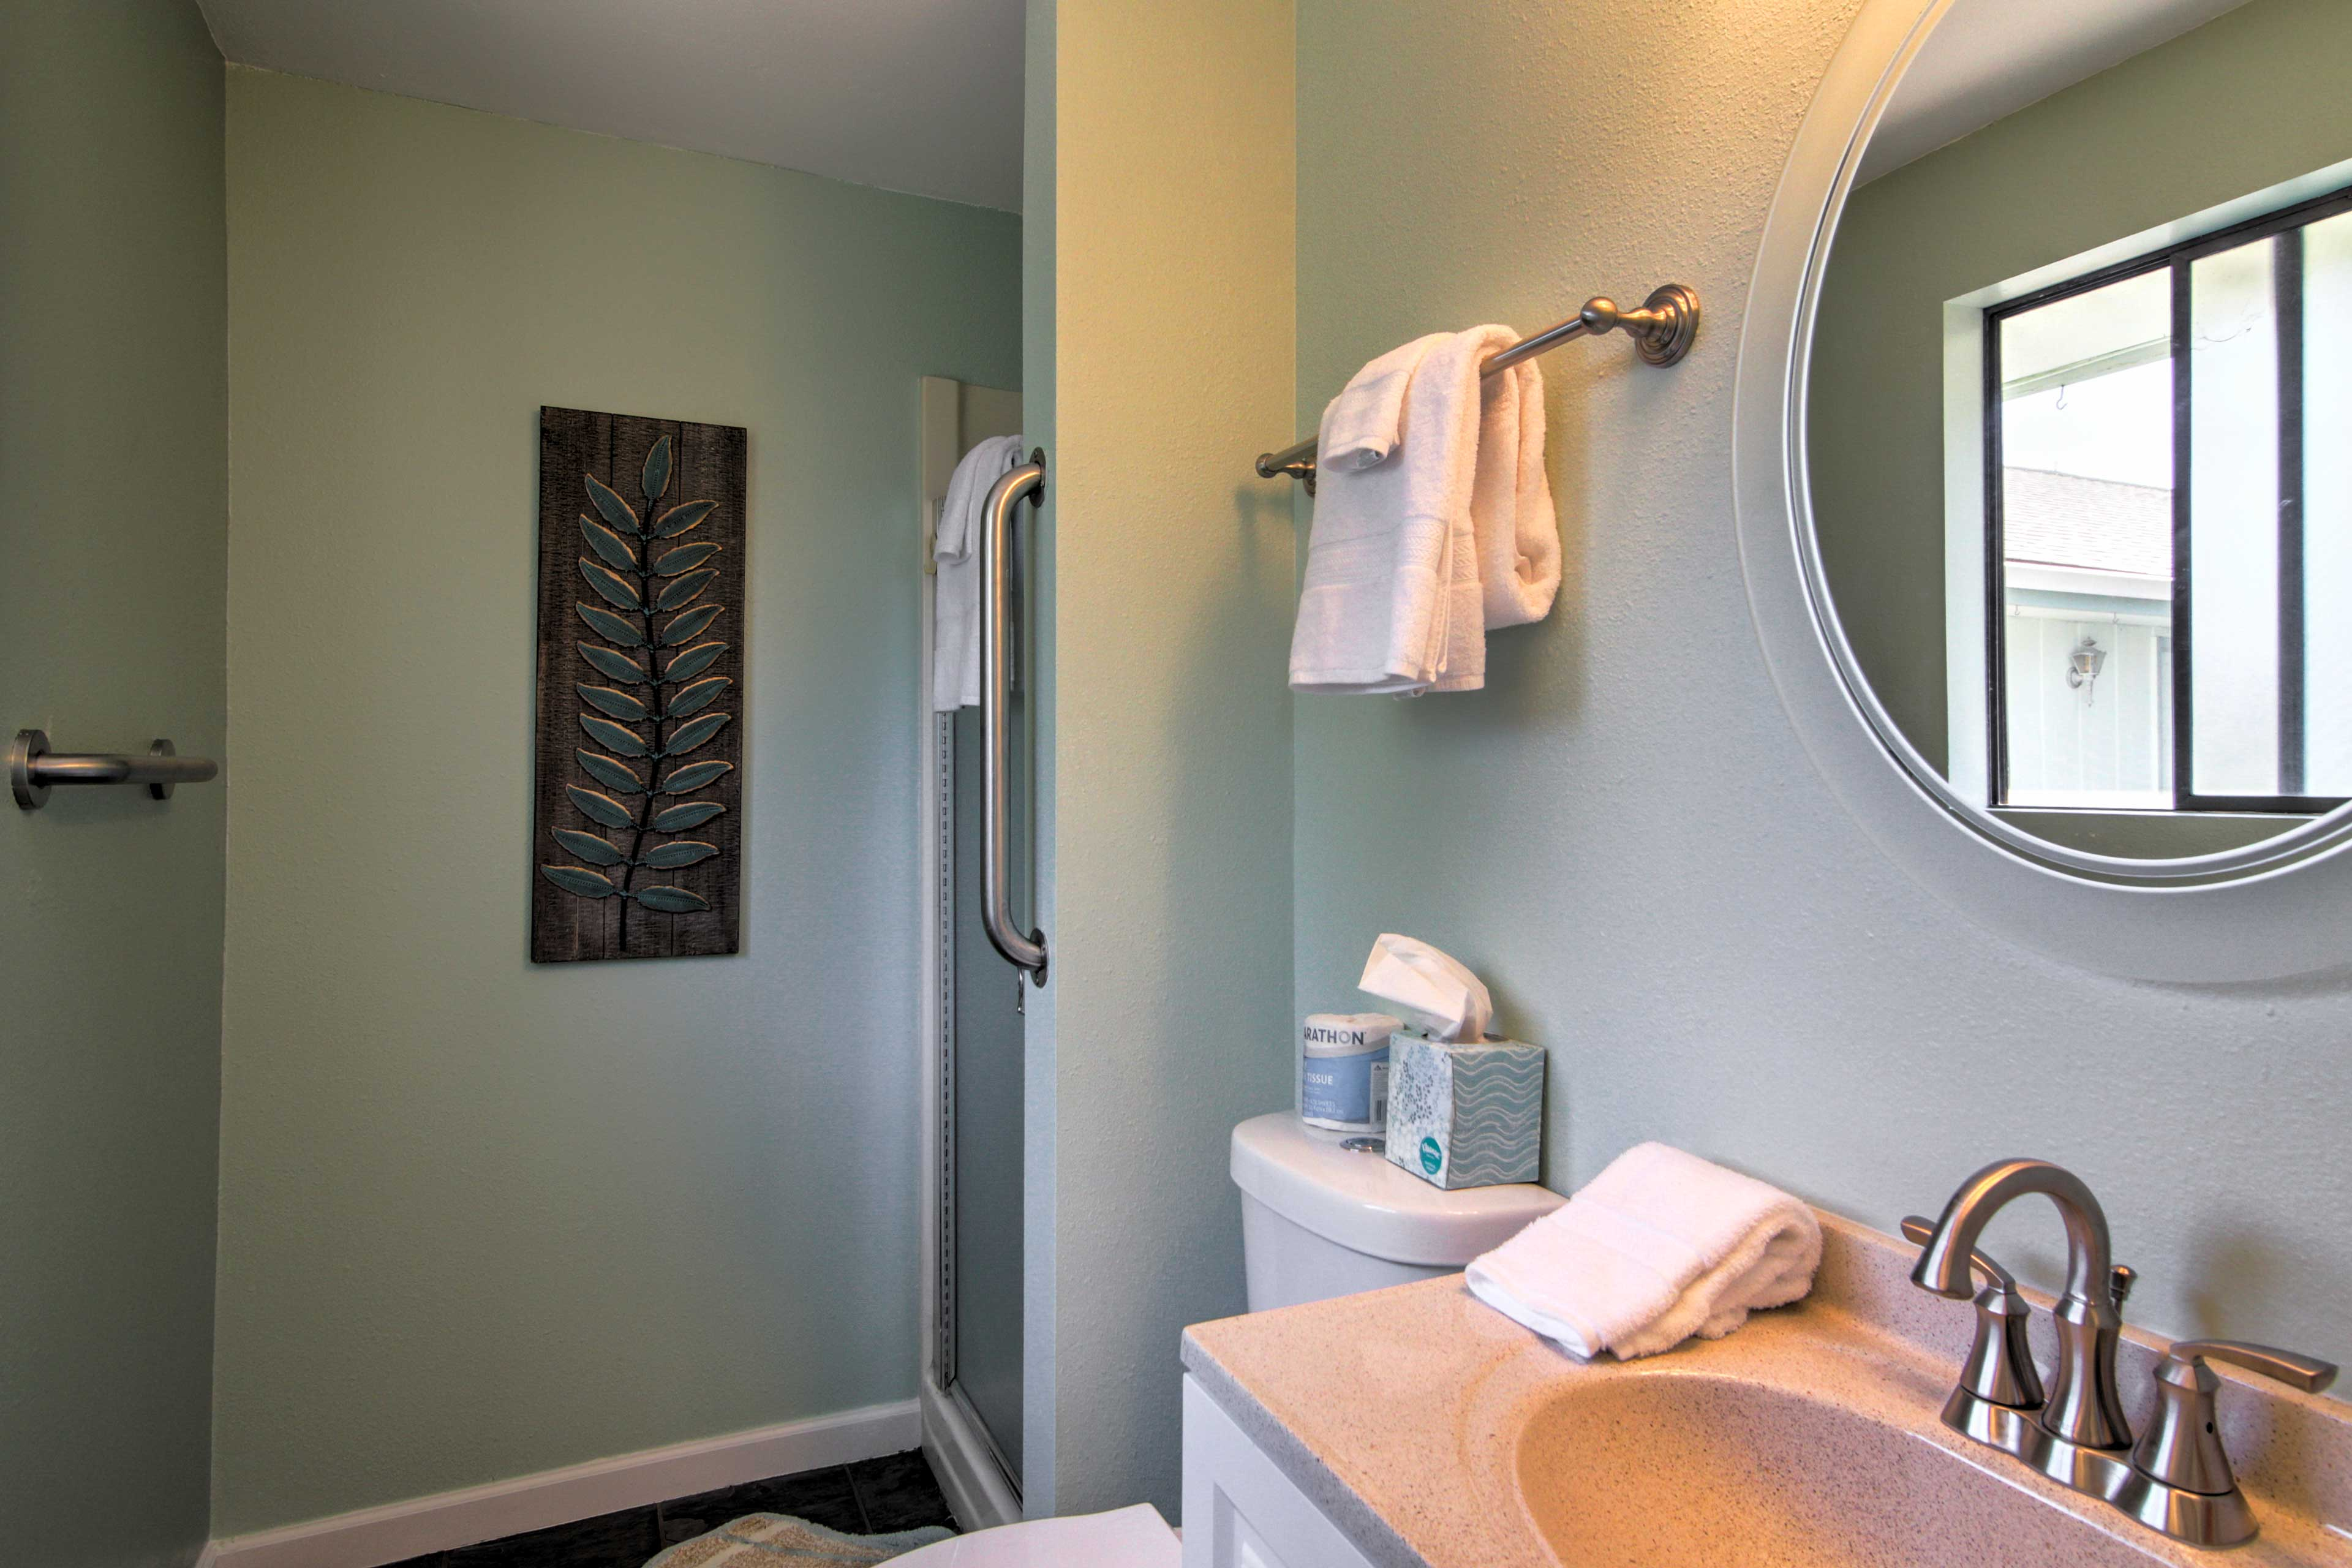 Freshen up before heading out the door for a fun-filled day.